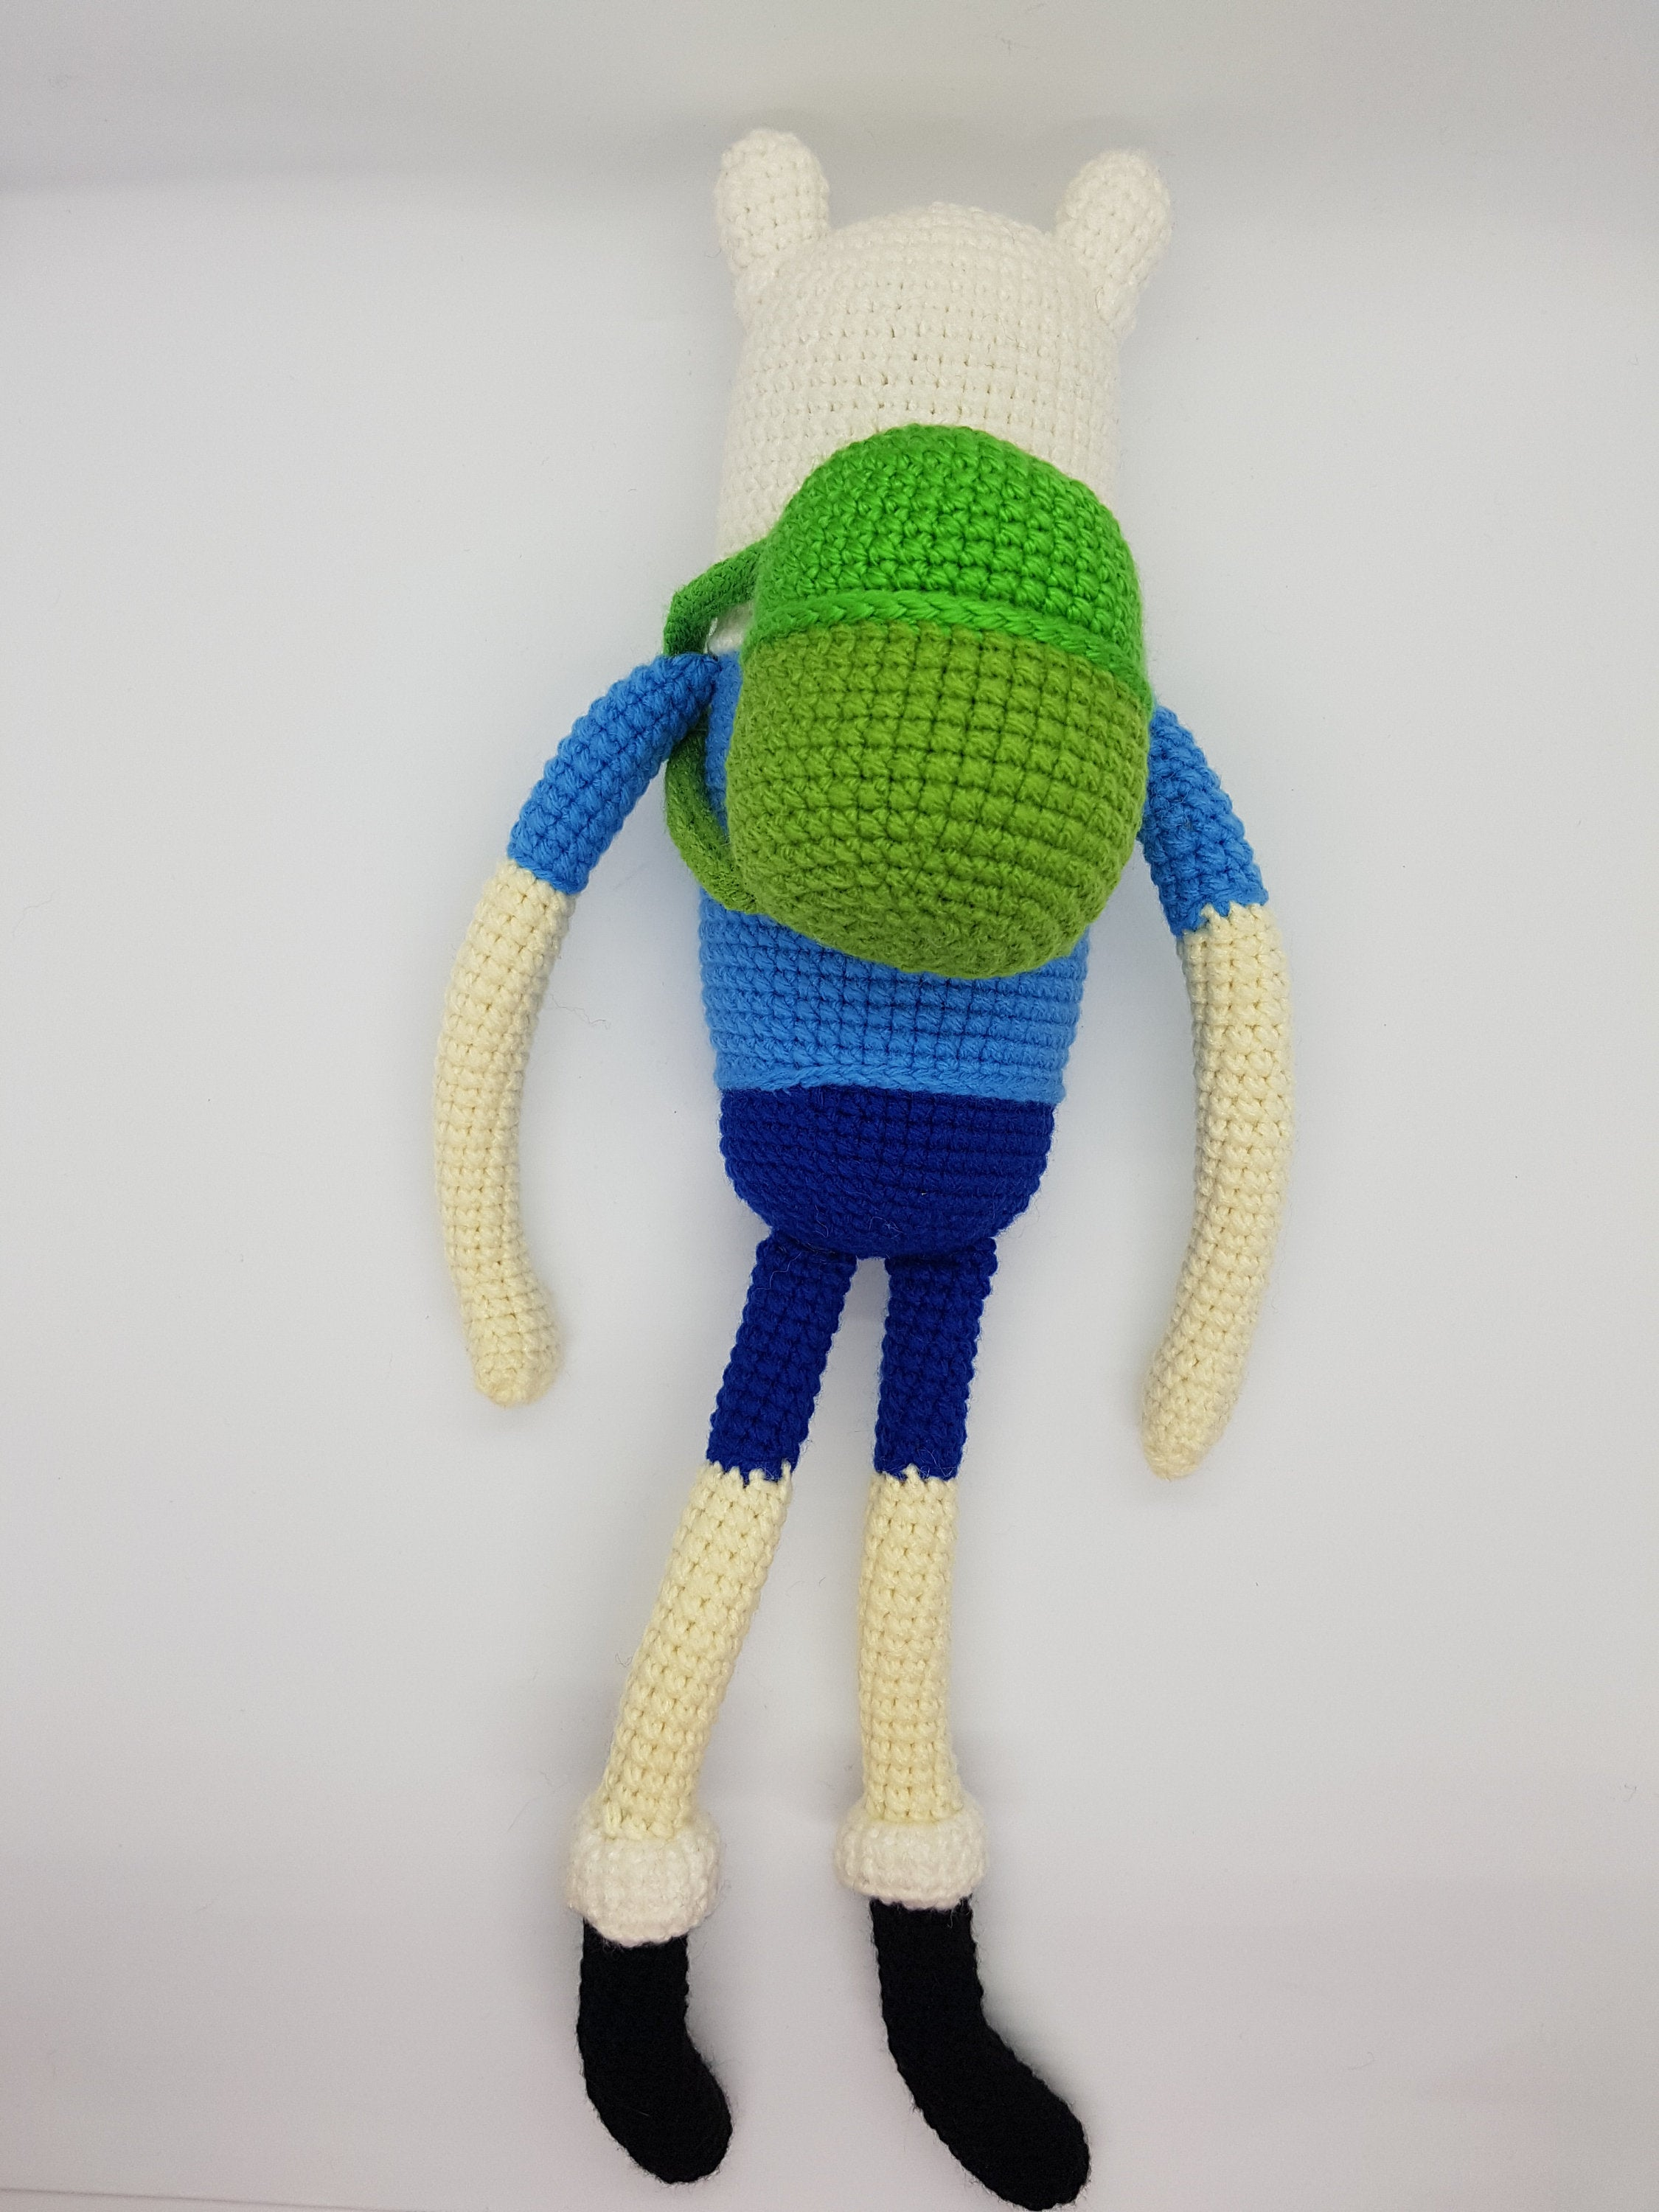 finn the human from adventuretime